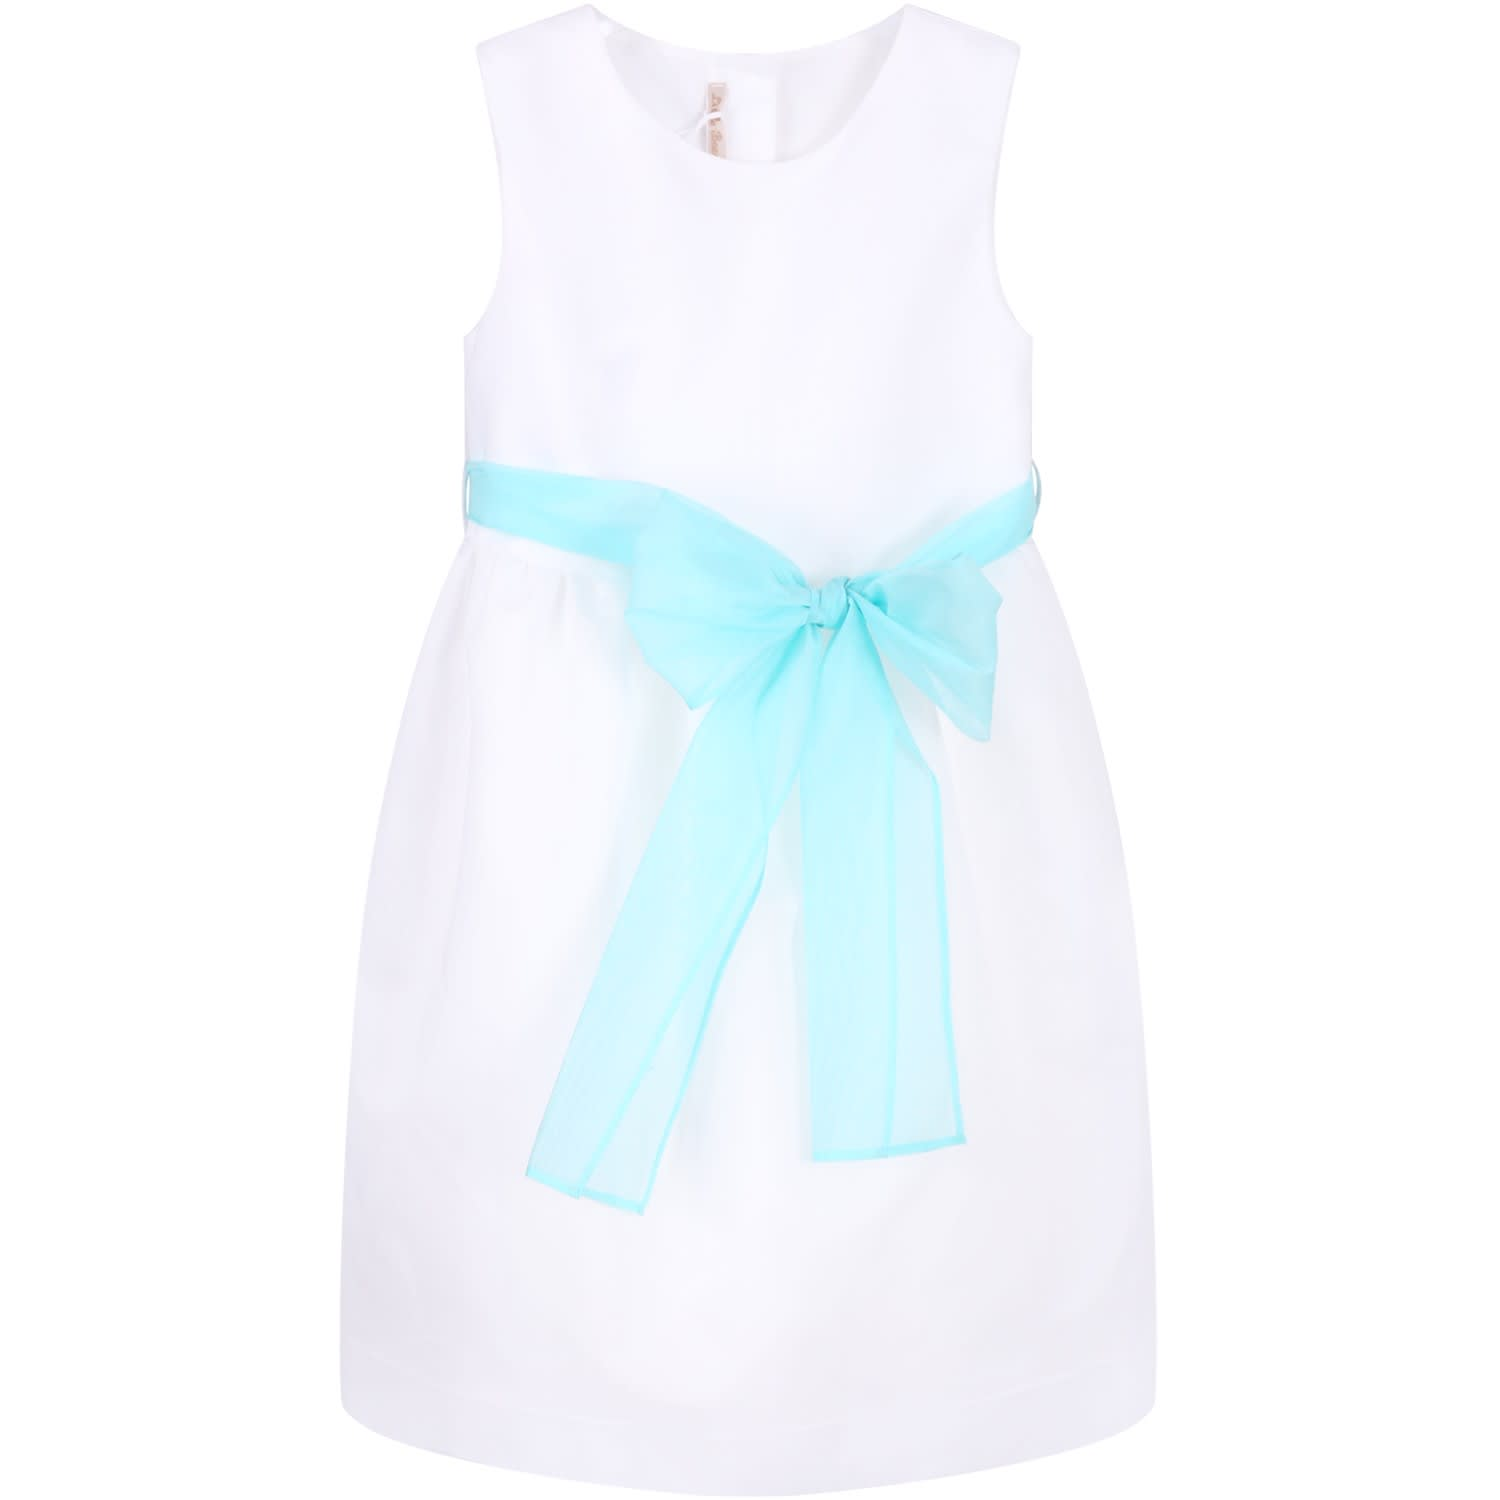 Little Bear White Girl Dress With Bow